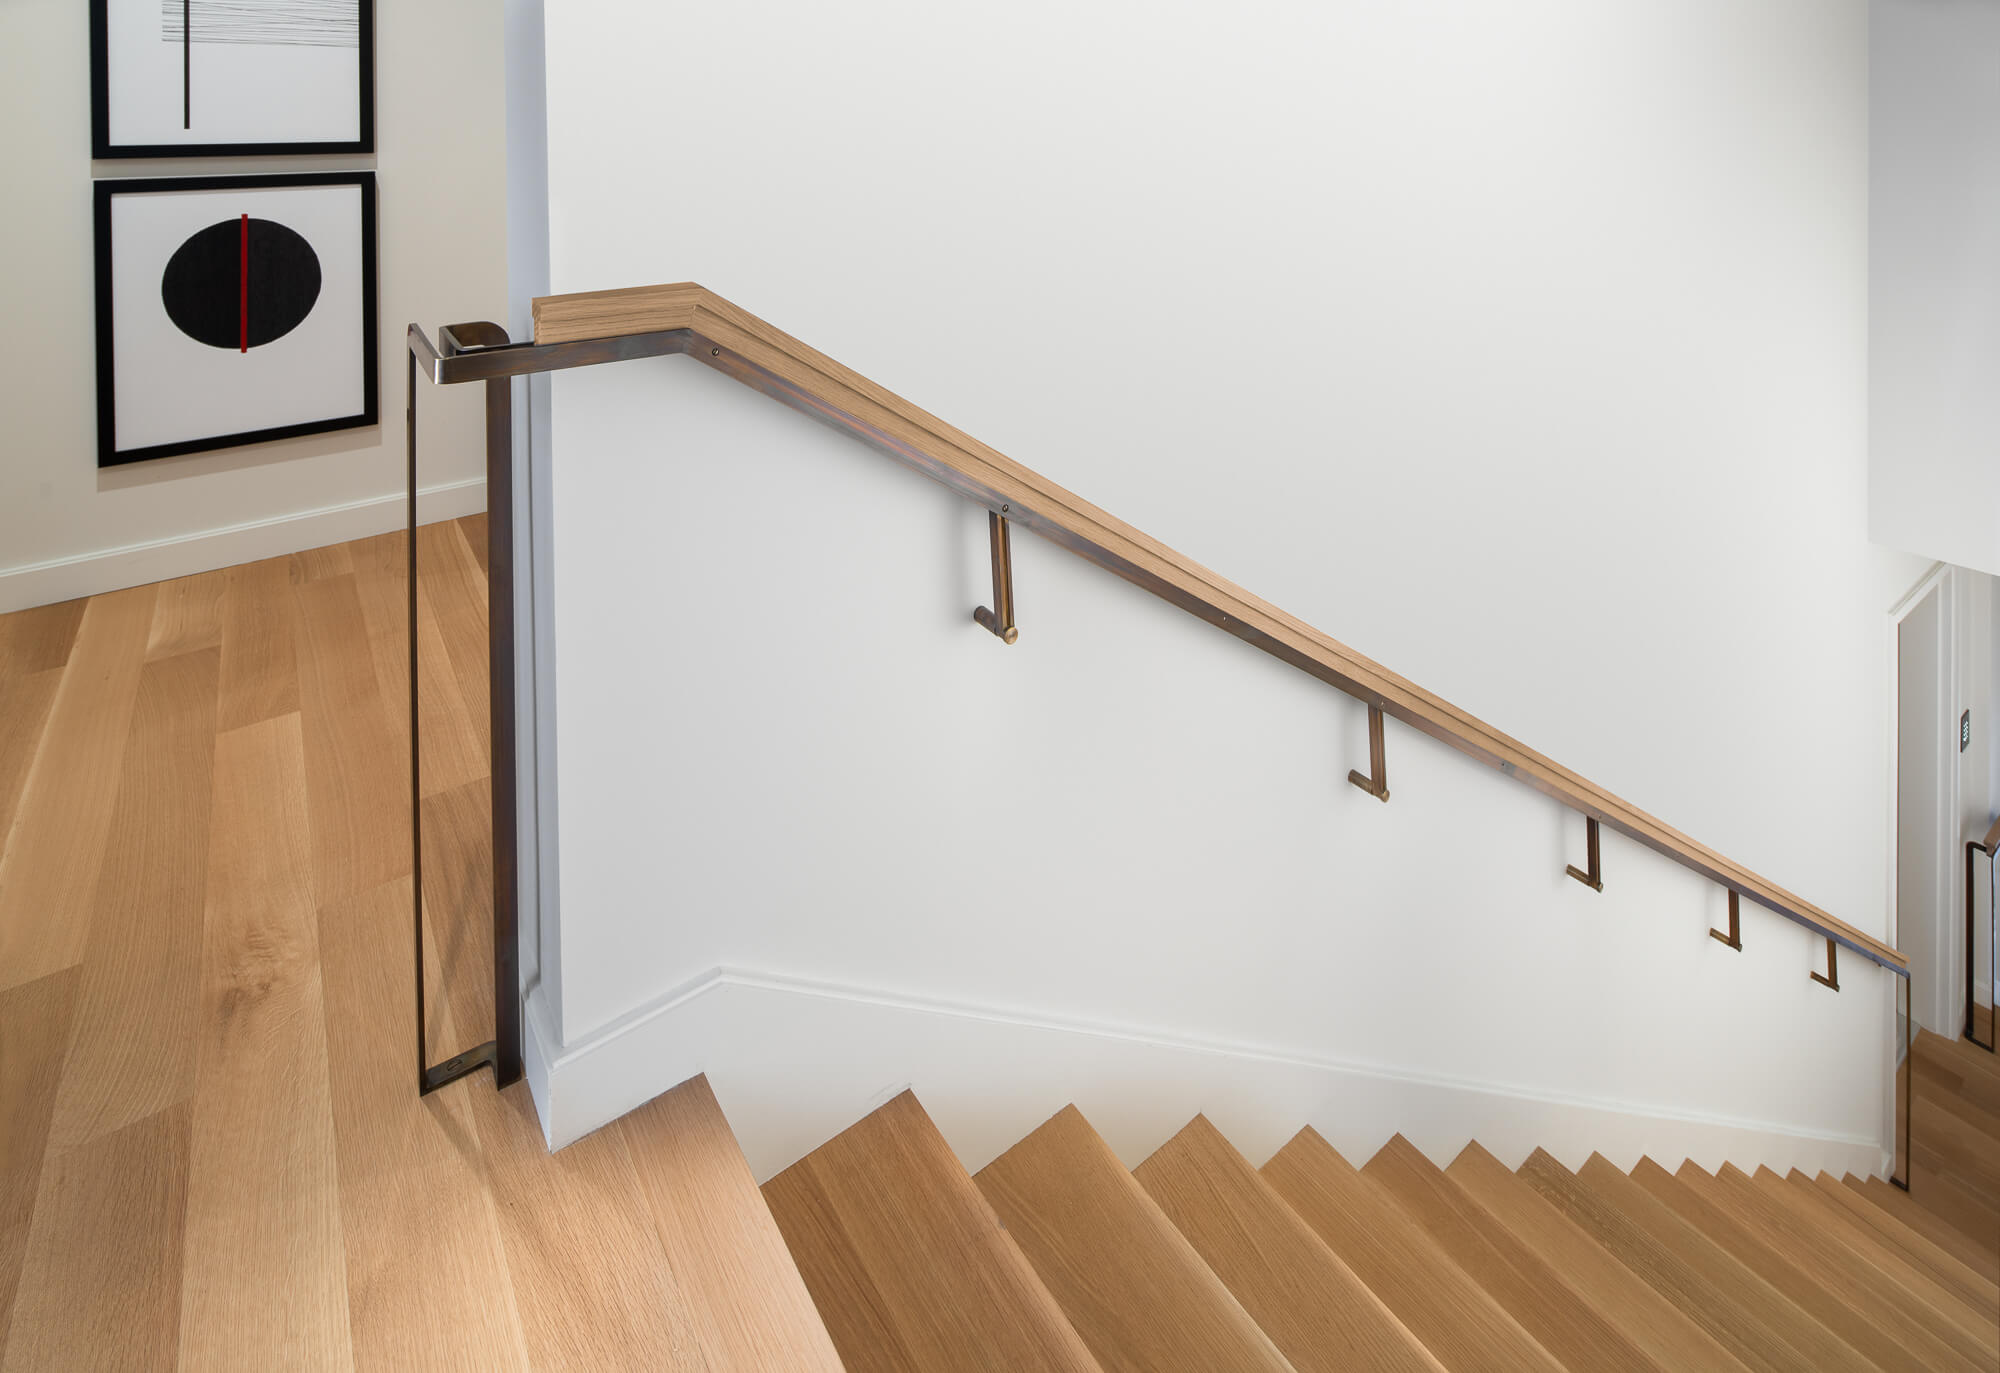 Rift sawn white oak stairs with wooden hand rail.